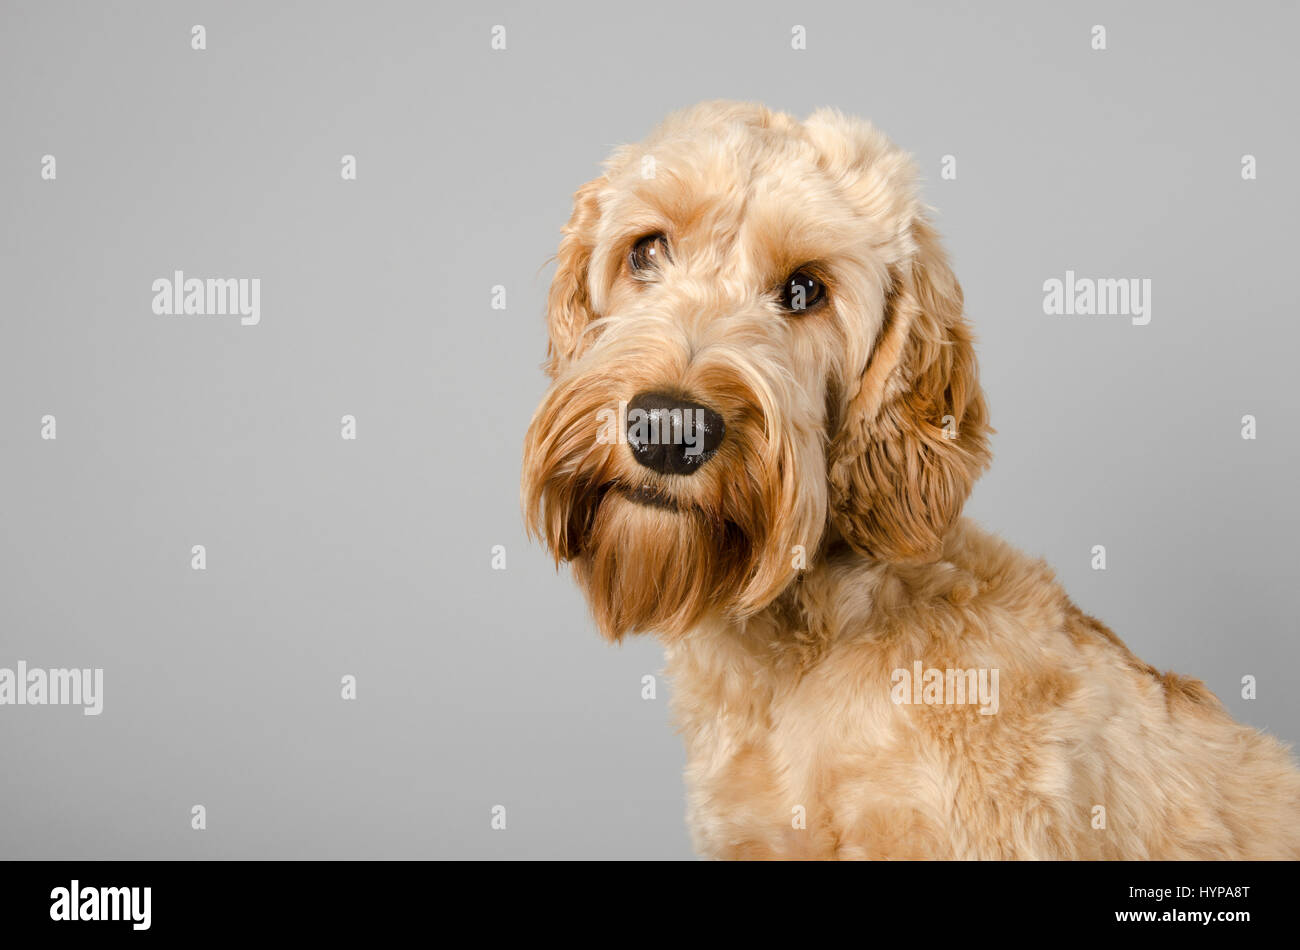 Cockapoo Dog against a grey background - Stock Image